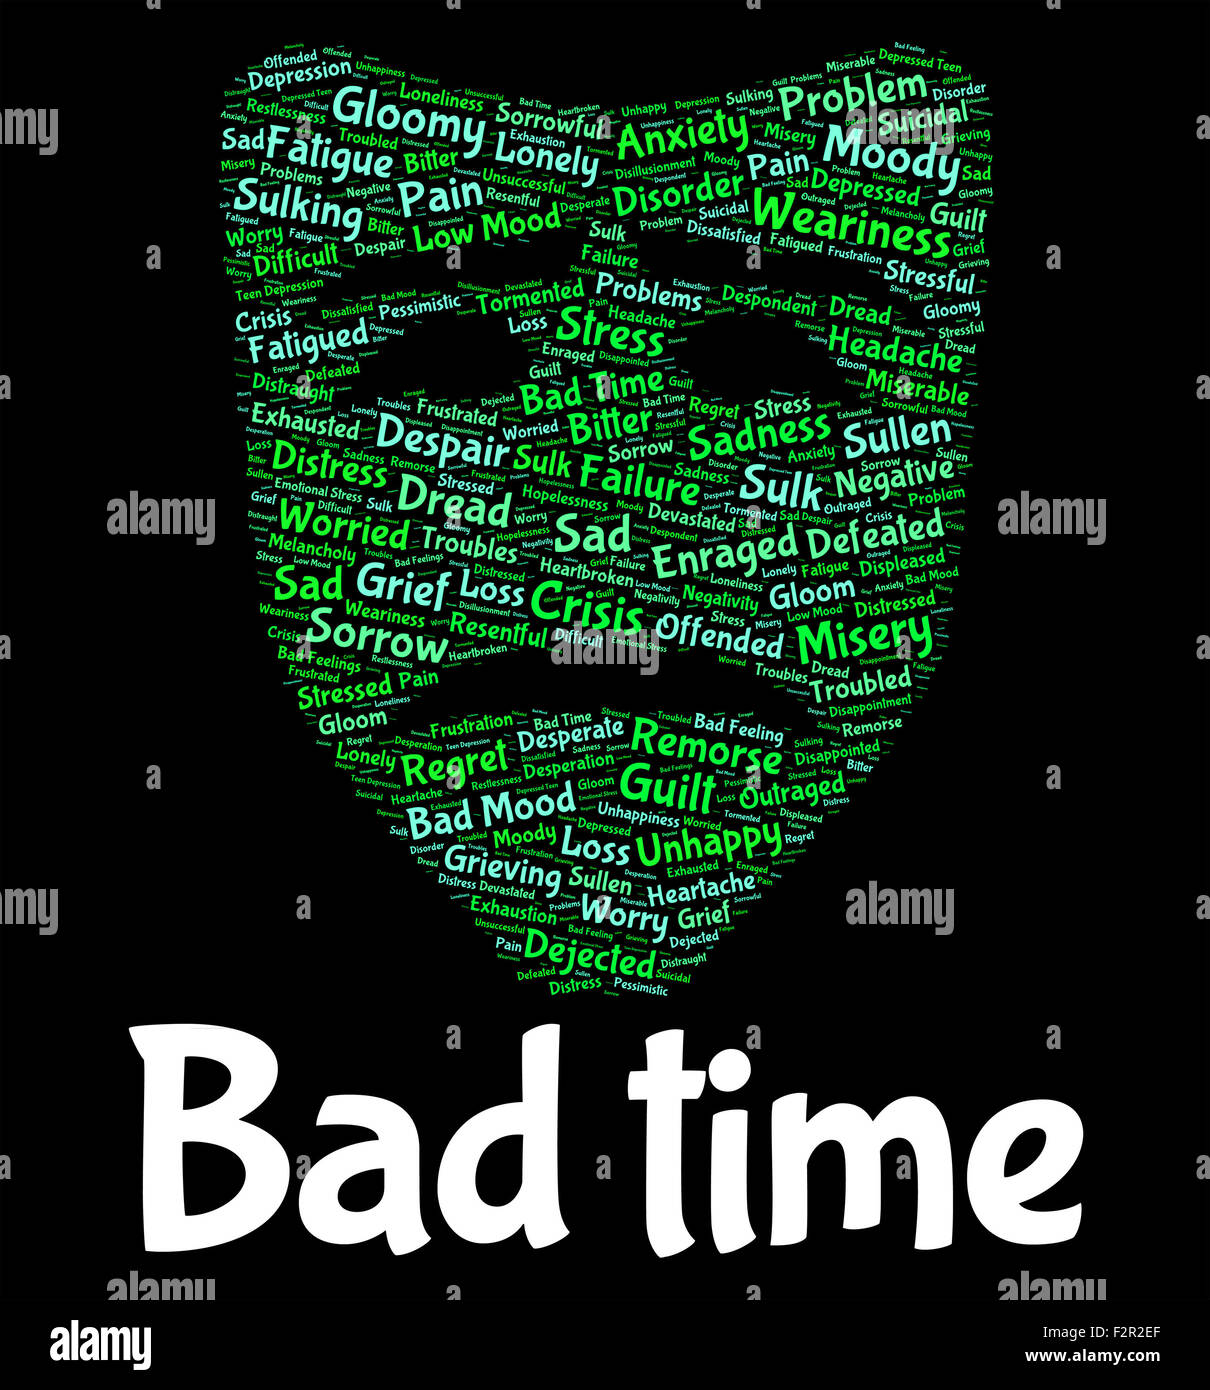 Bad Time Meaning Hard Times And Misery Stock Photo Alamy